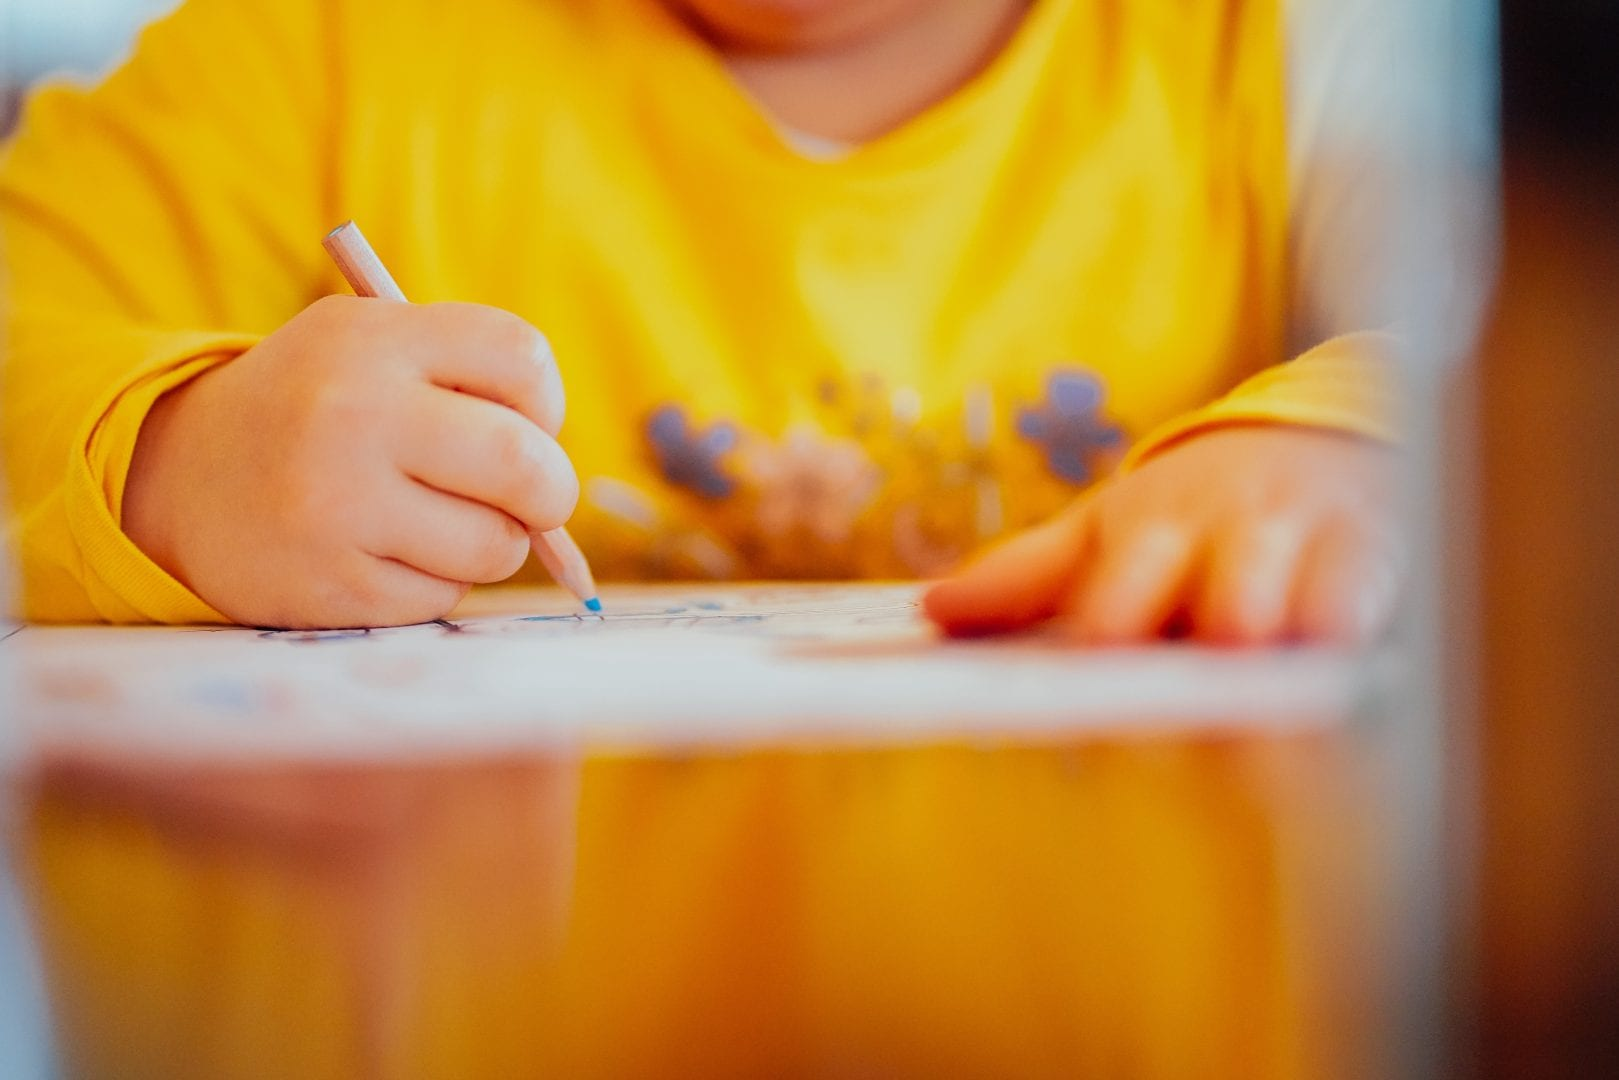 a kid in a yellow shirt coloring with a blue colored pencil